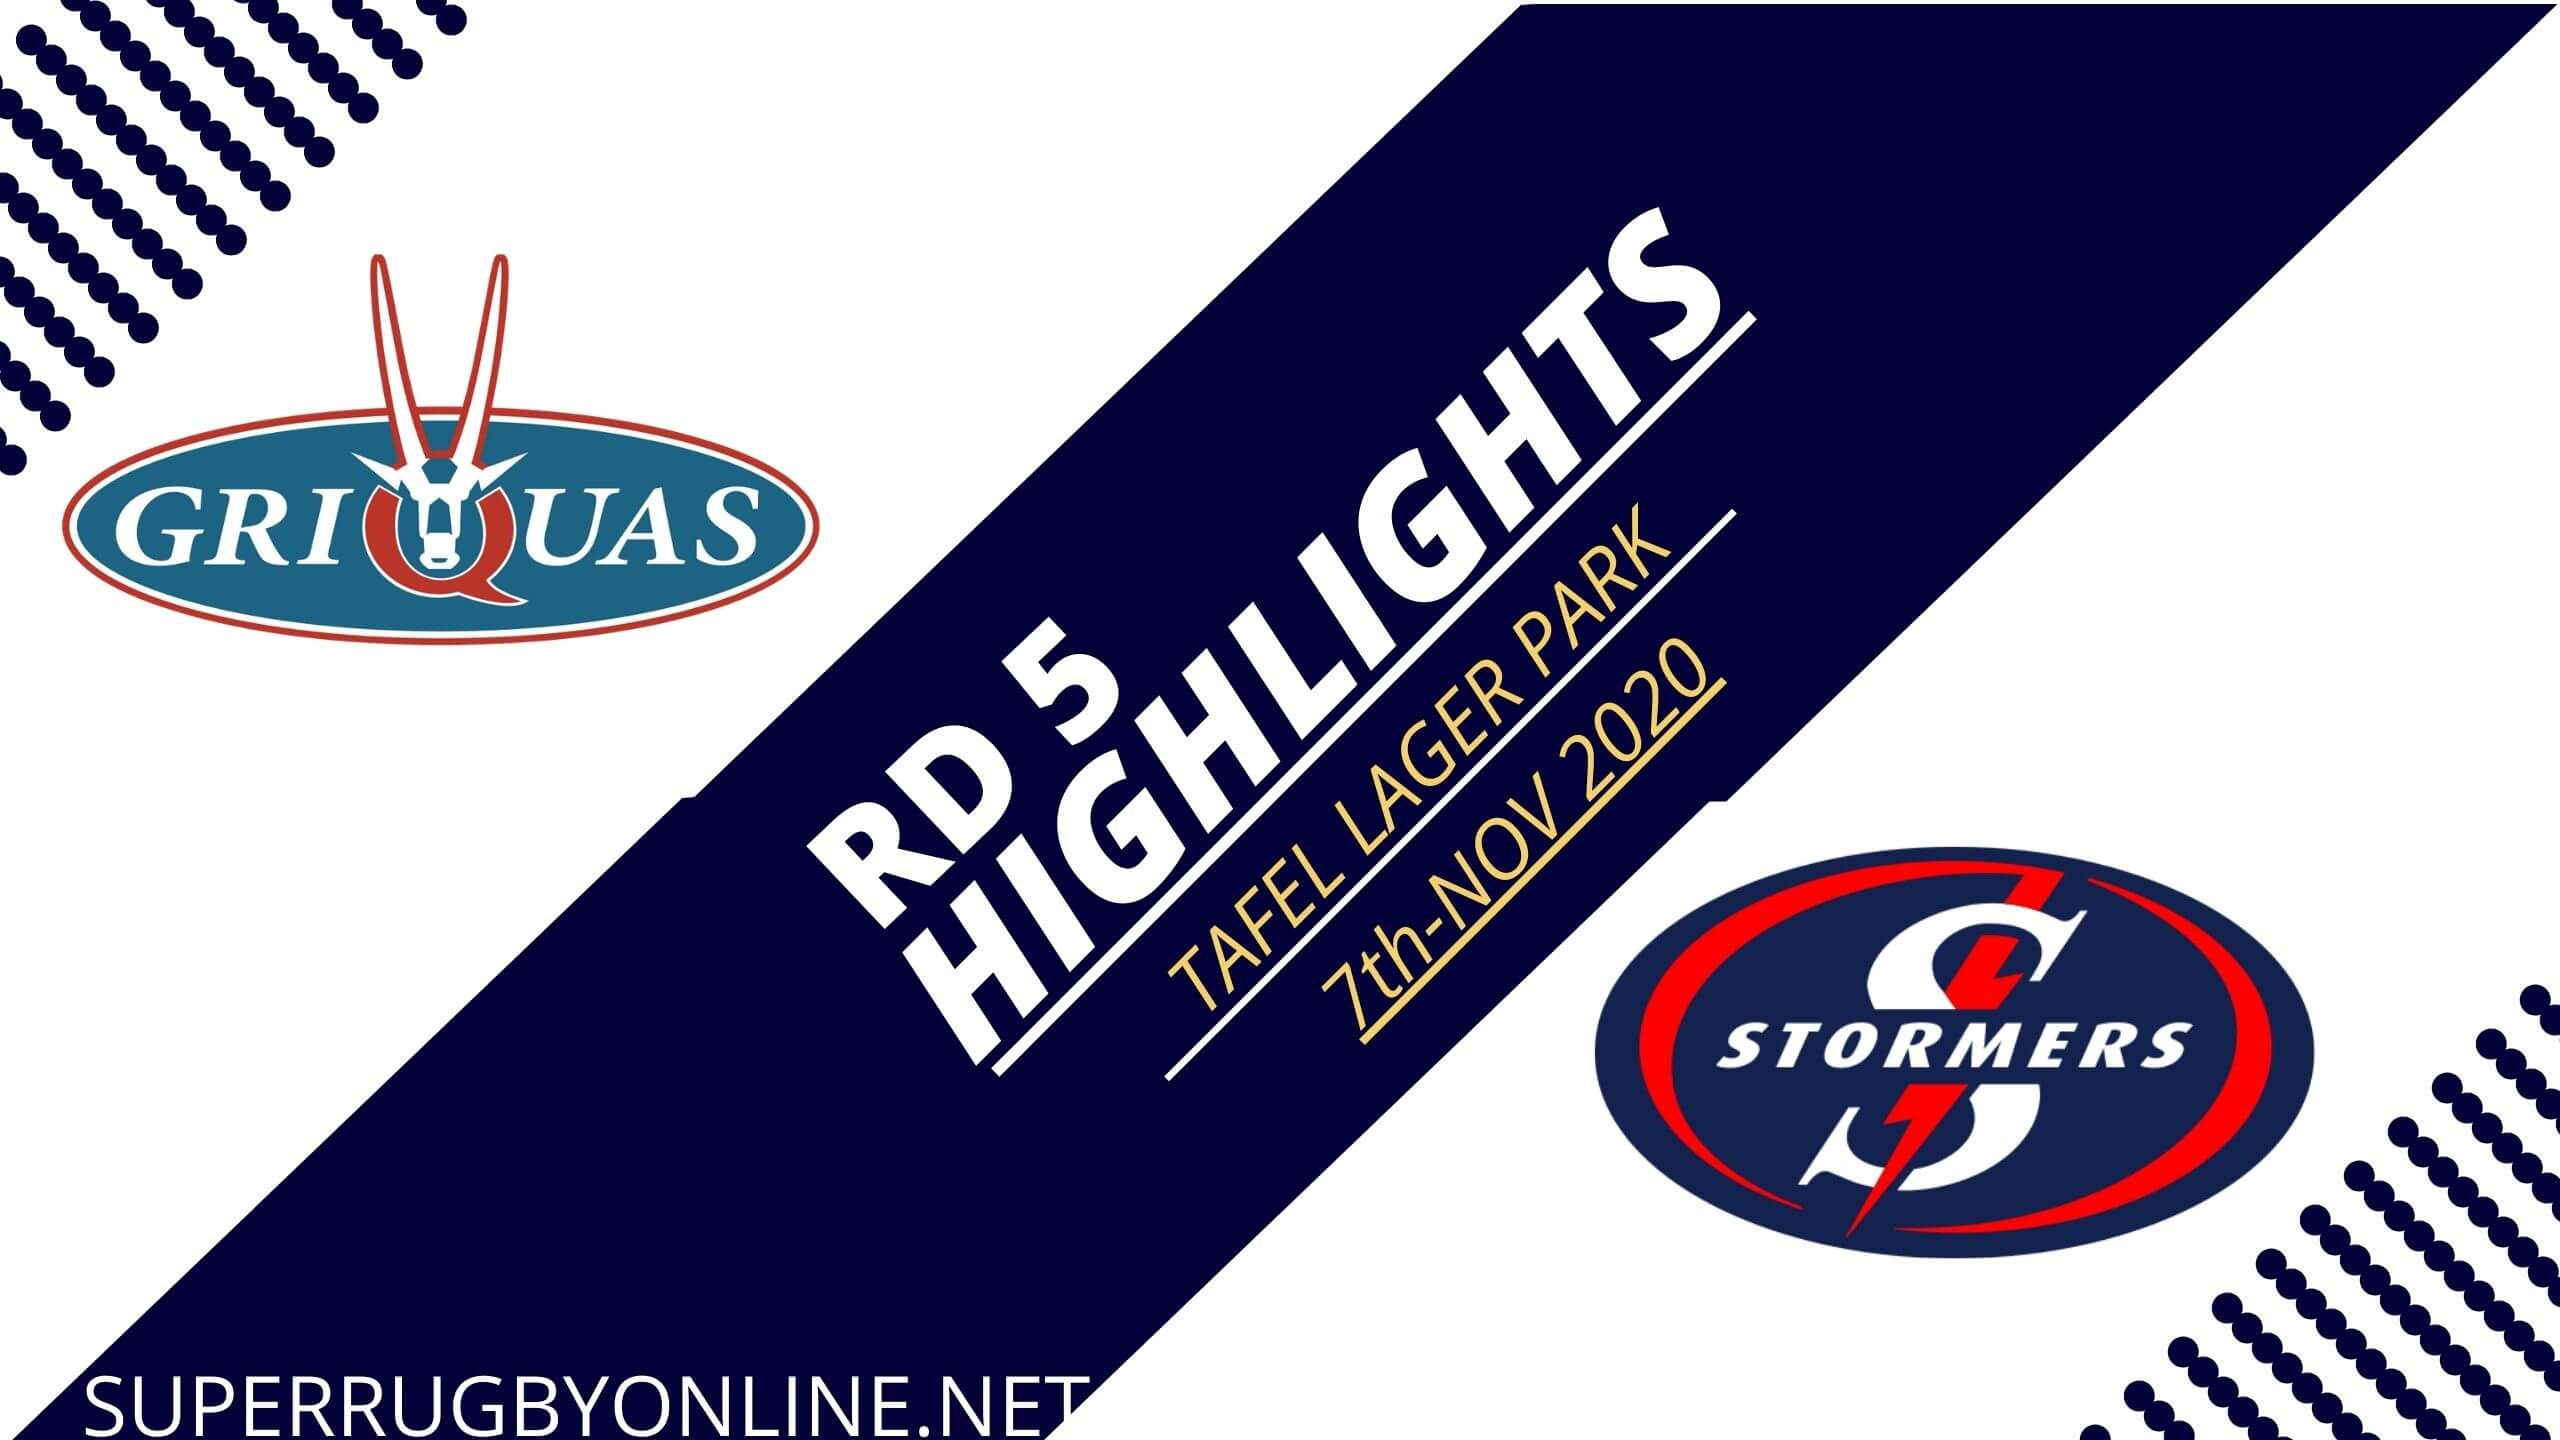 Griquas vs Stormers Rd 5 Highlights 2020